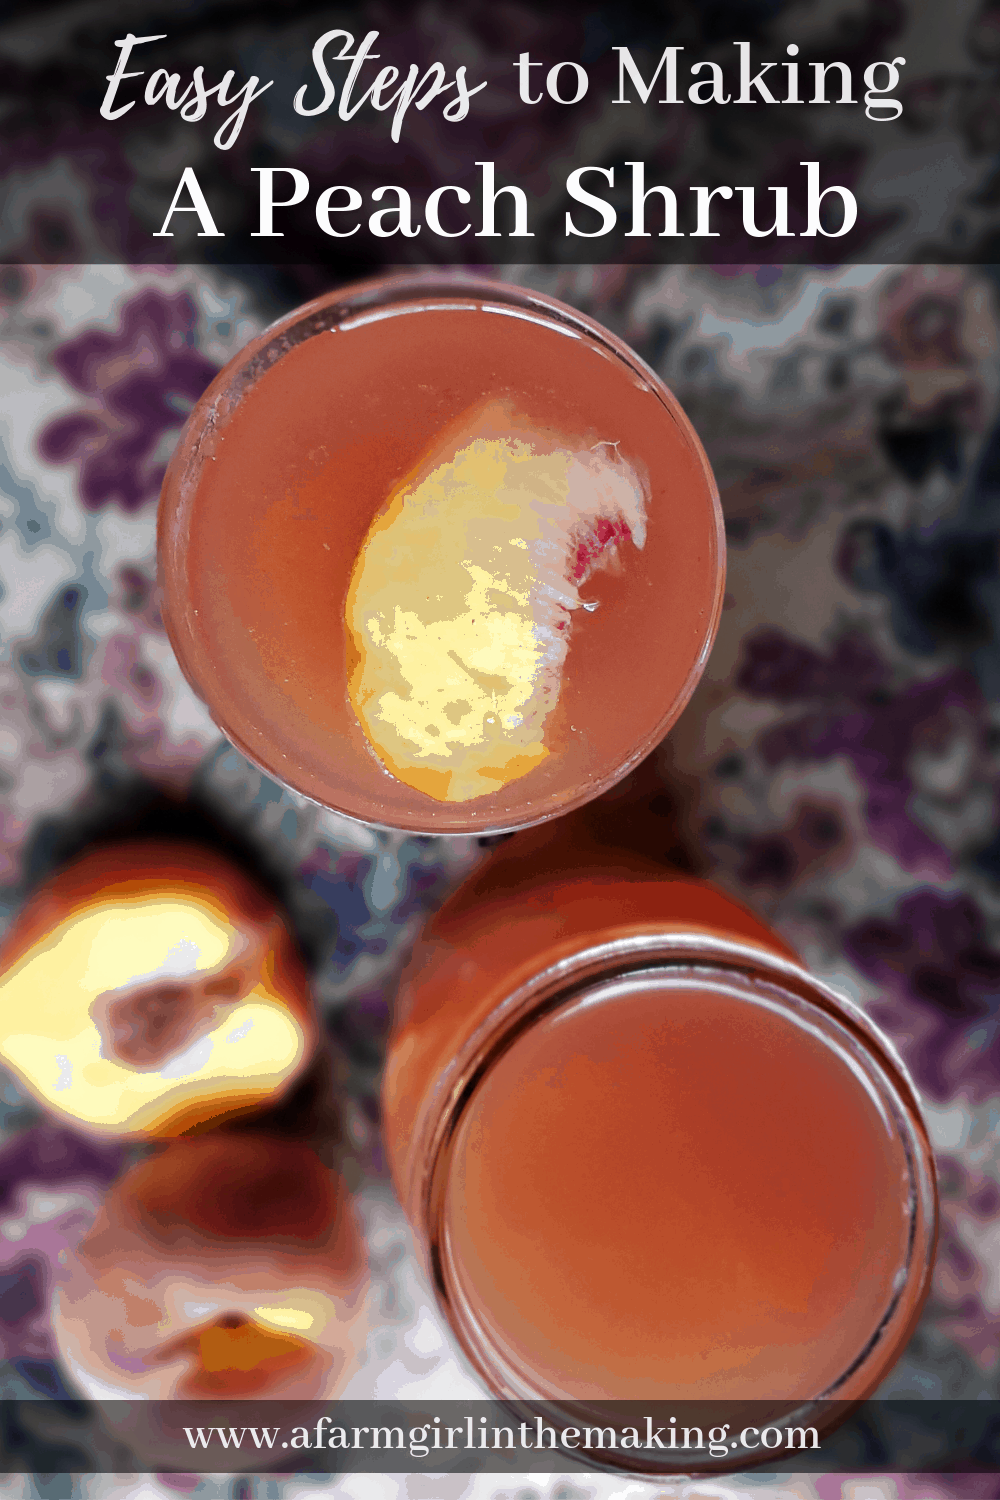 Easy Steps to Making a Peach Shrub